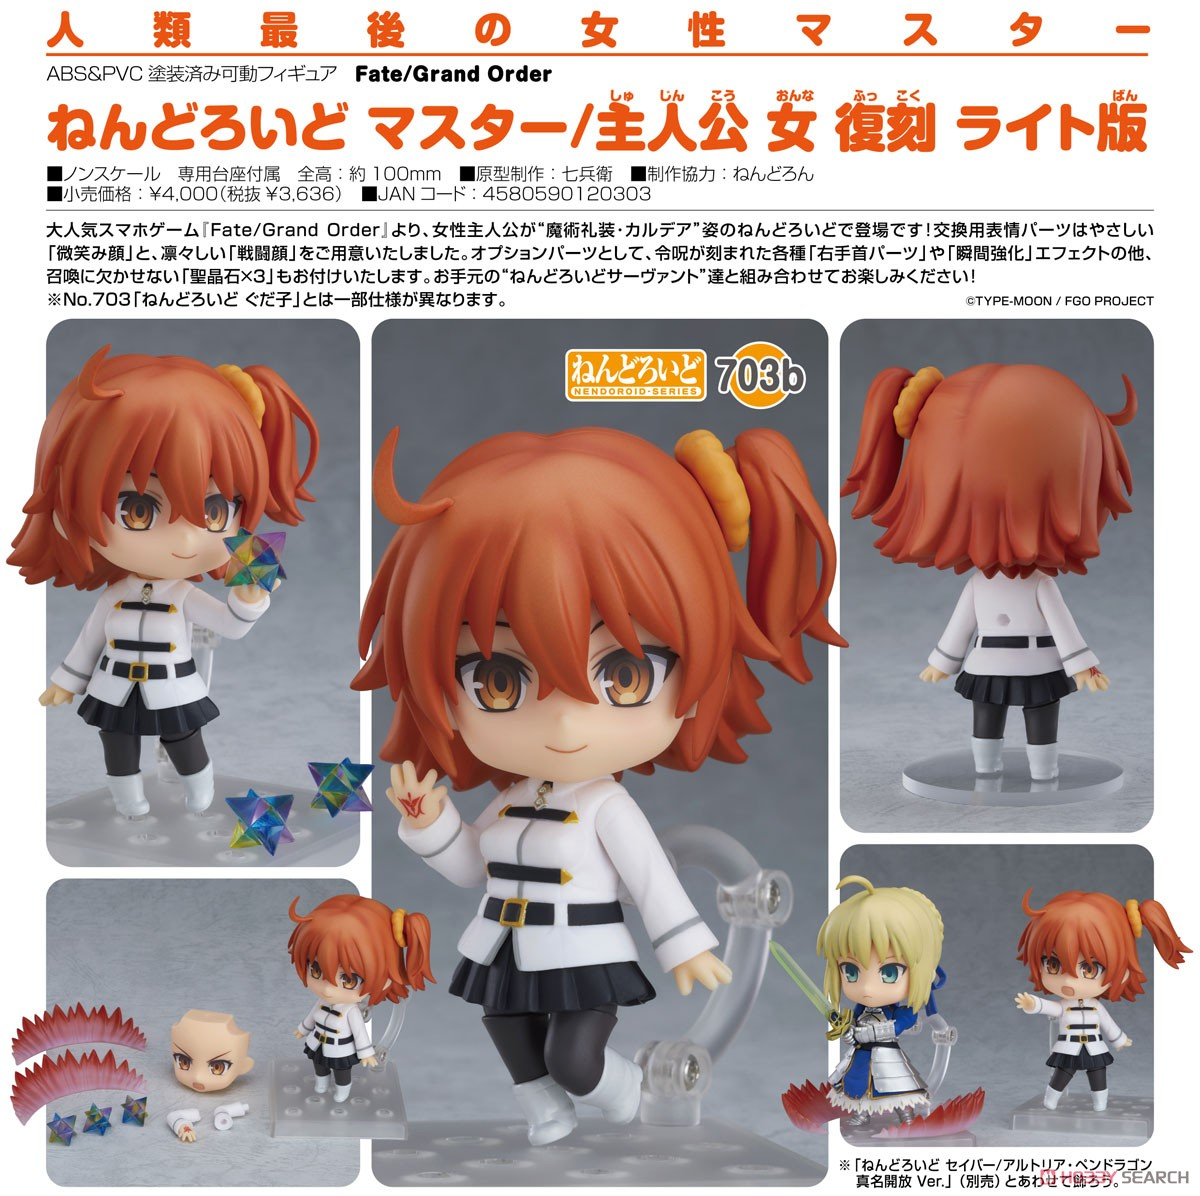 Fate/ Nendoroid Master/Female Protagonist: Light Edition